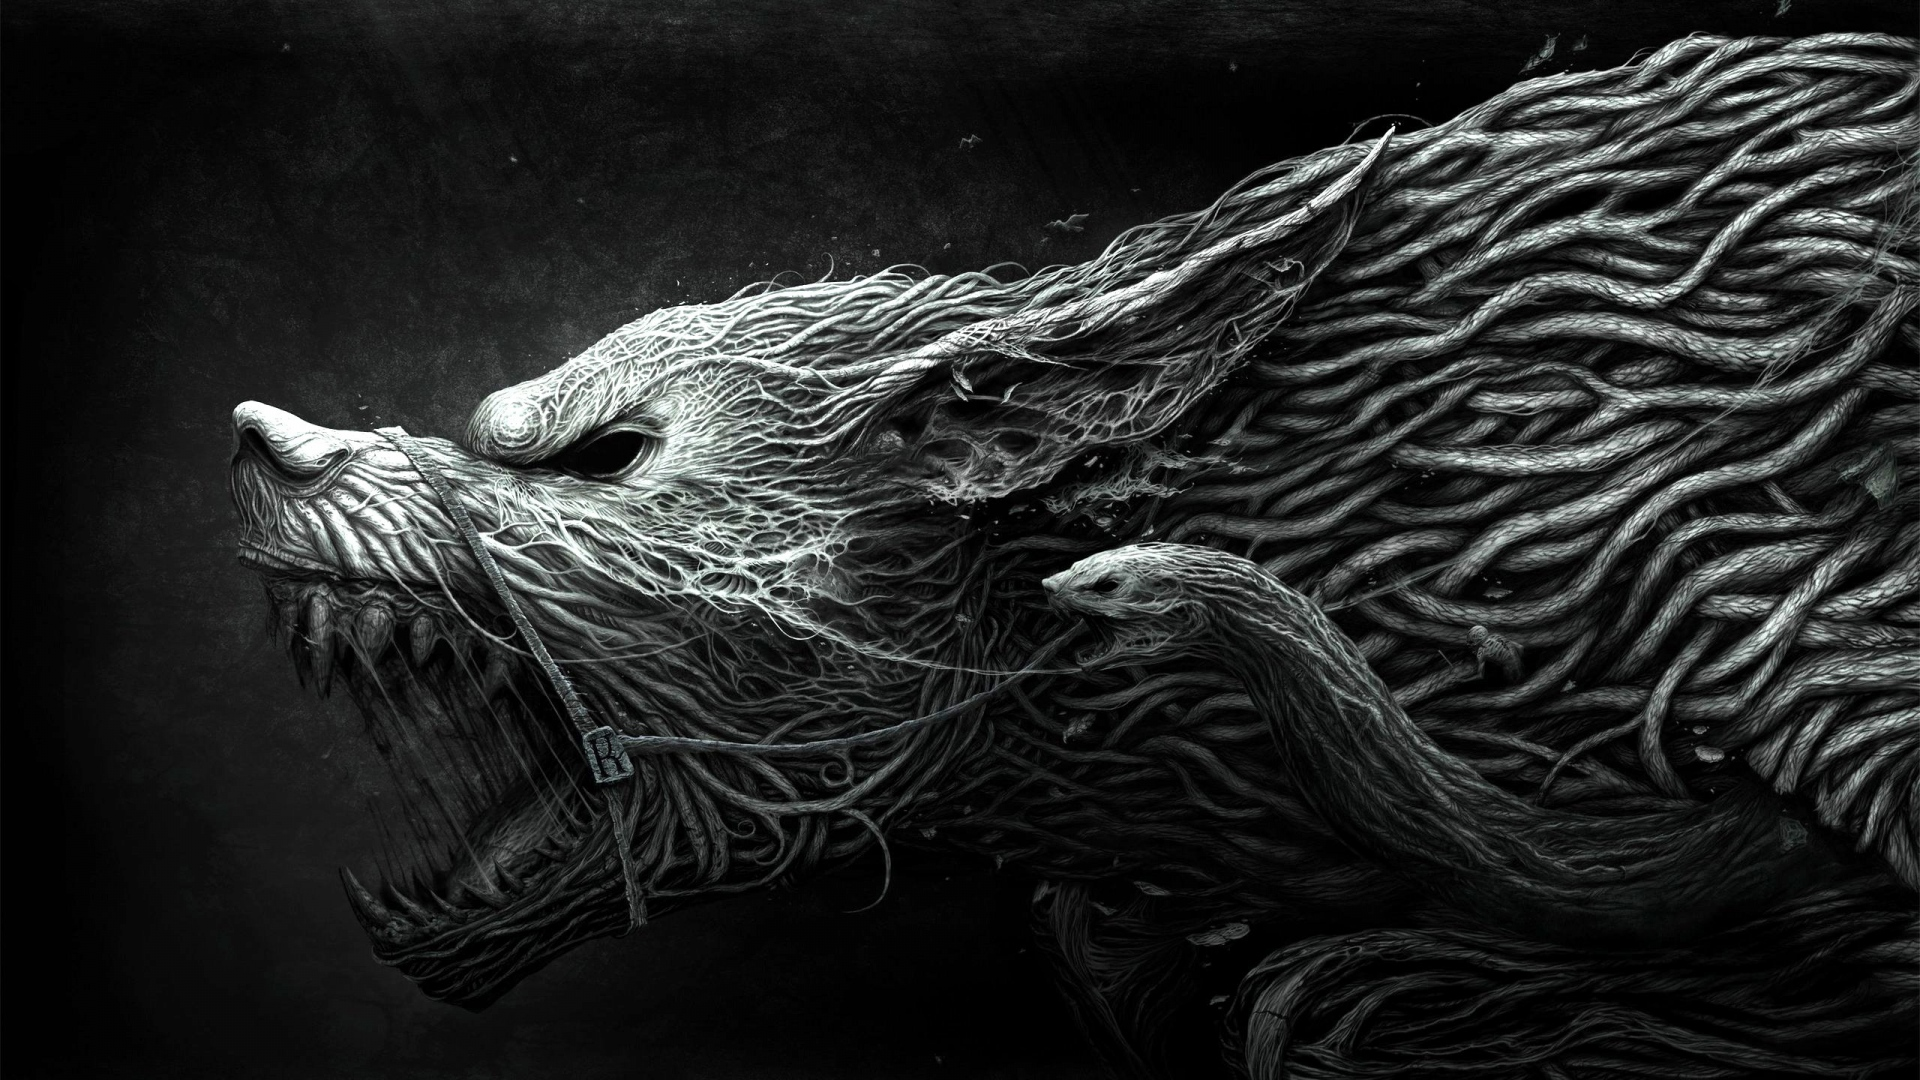 Drawn wallpaper wolf Wolf HD Preview black aggression